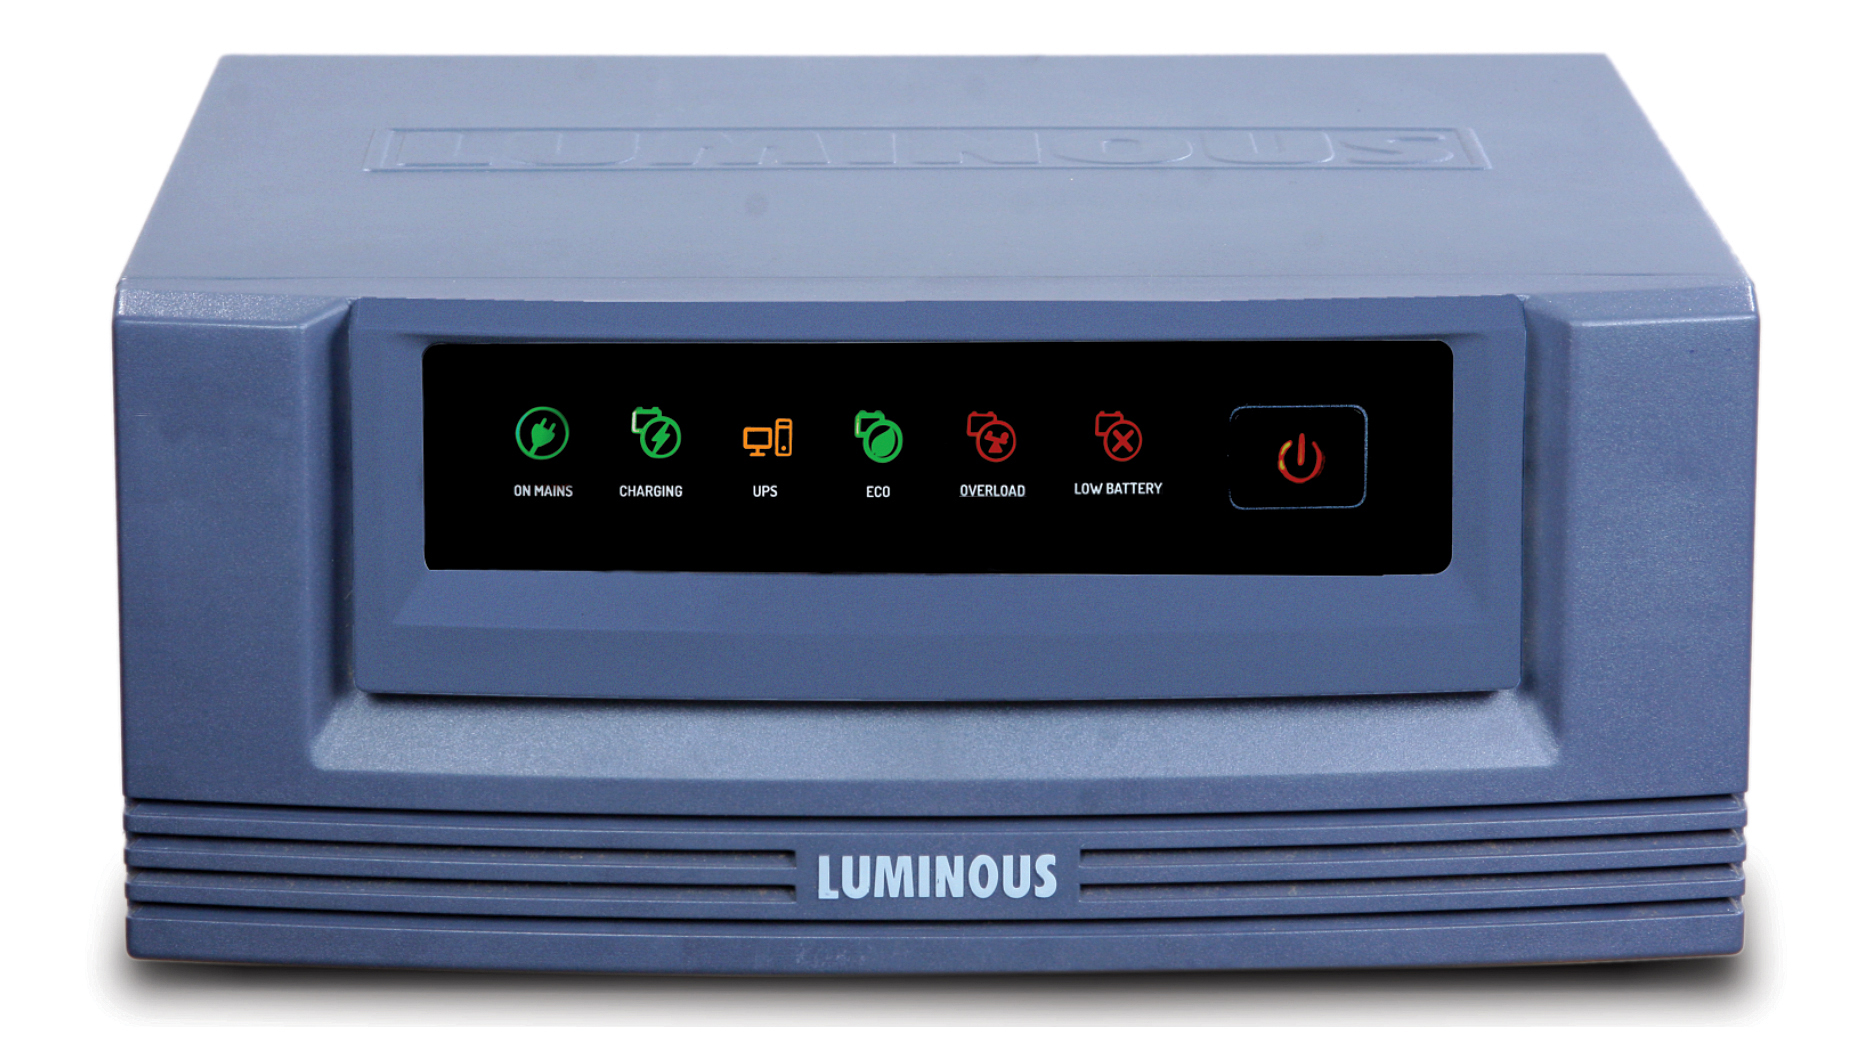 Luminous Ecowatt 1050 Ups Square Wave Inverter Image